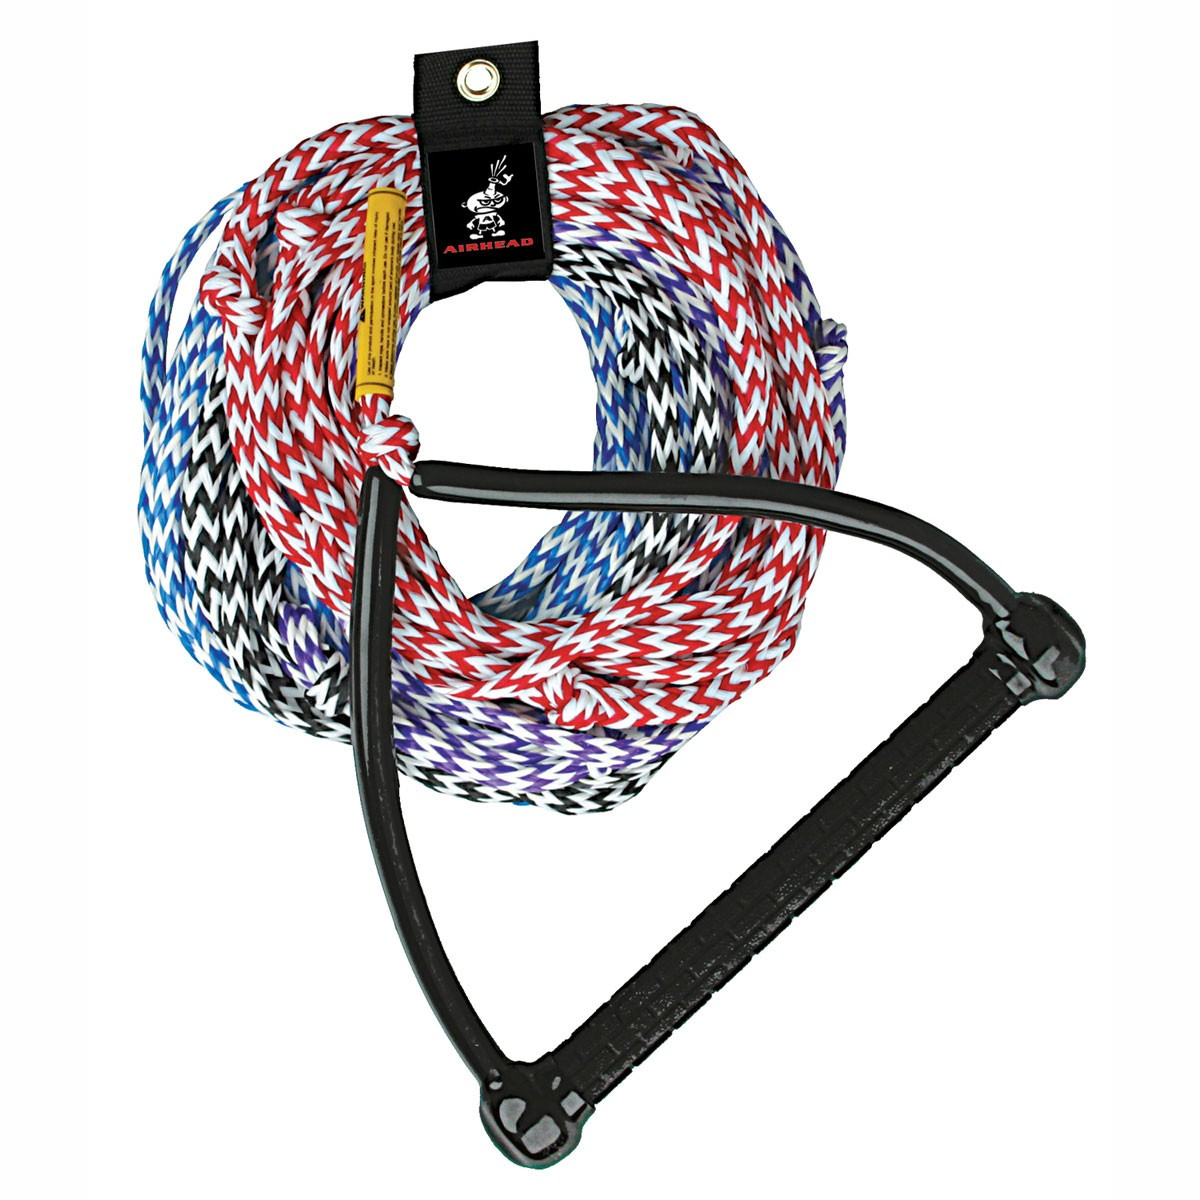 Water Ski Rope, 4-section